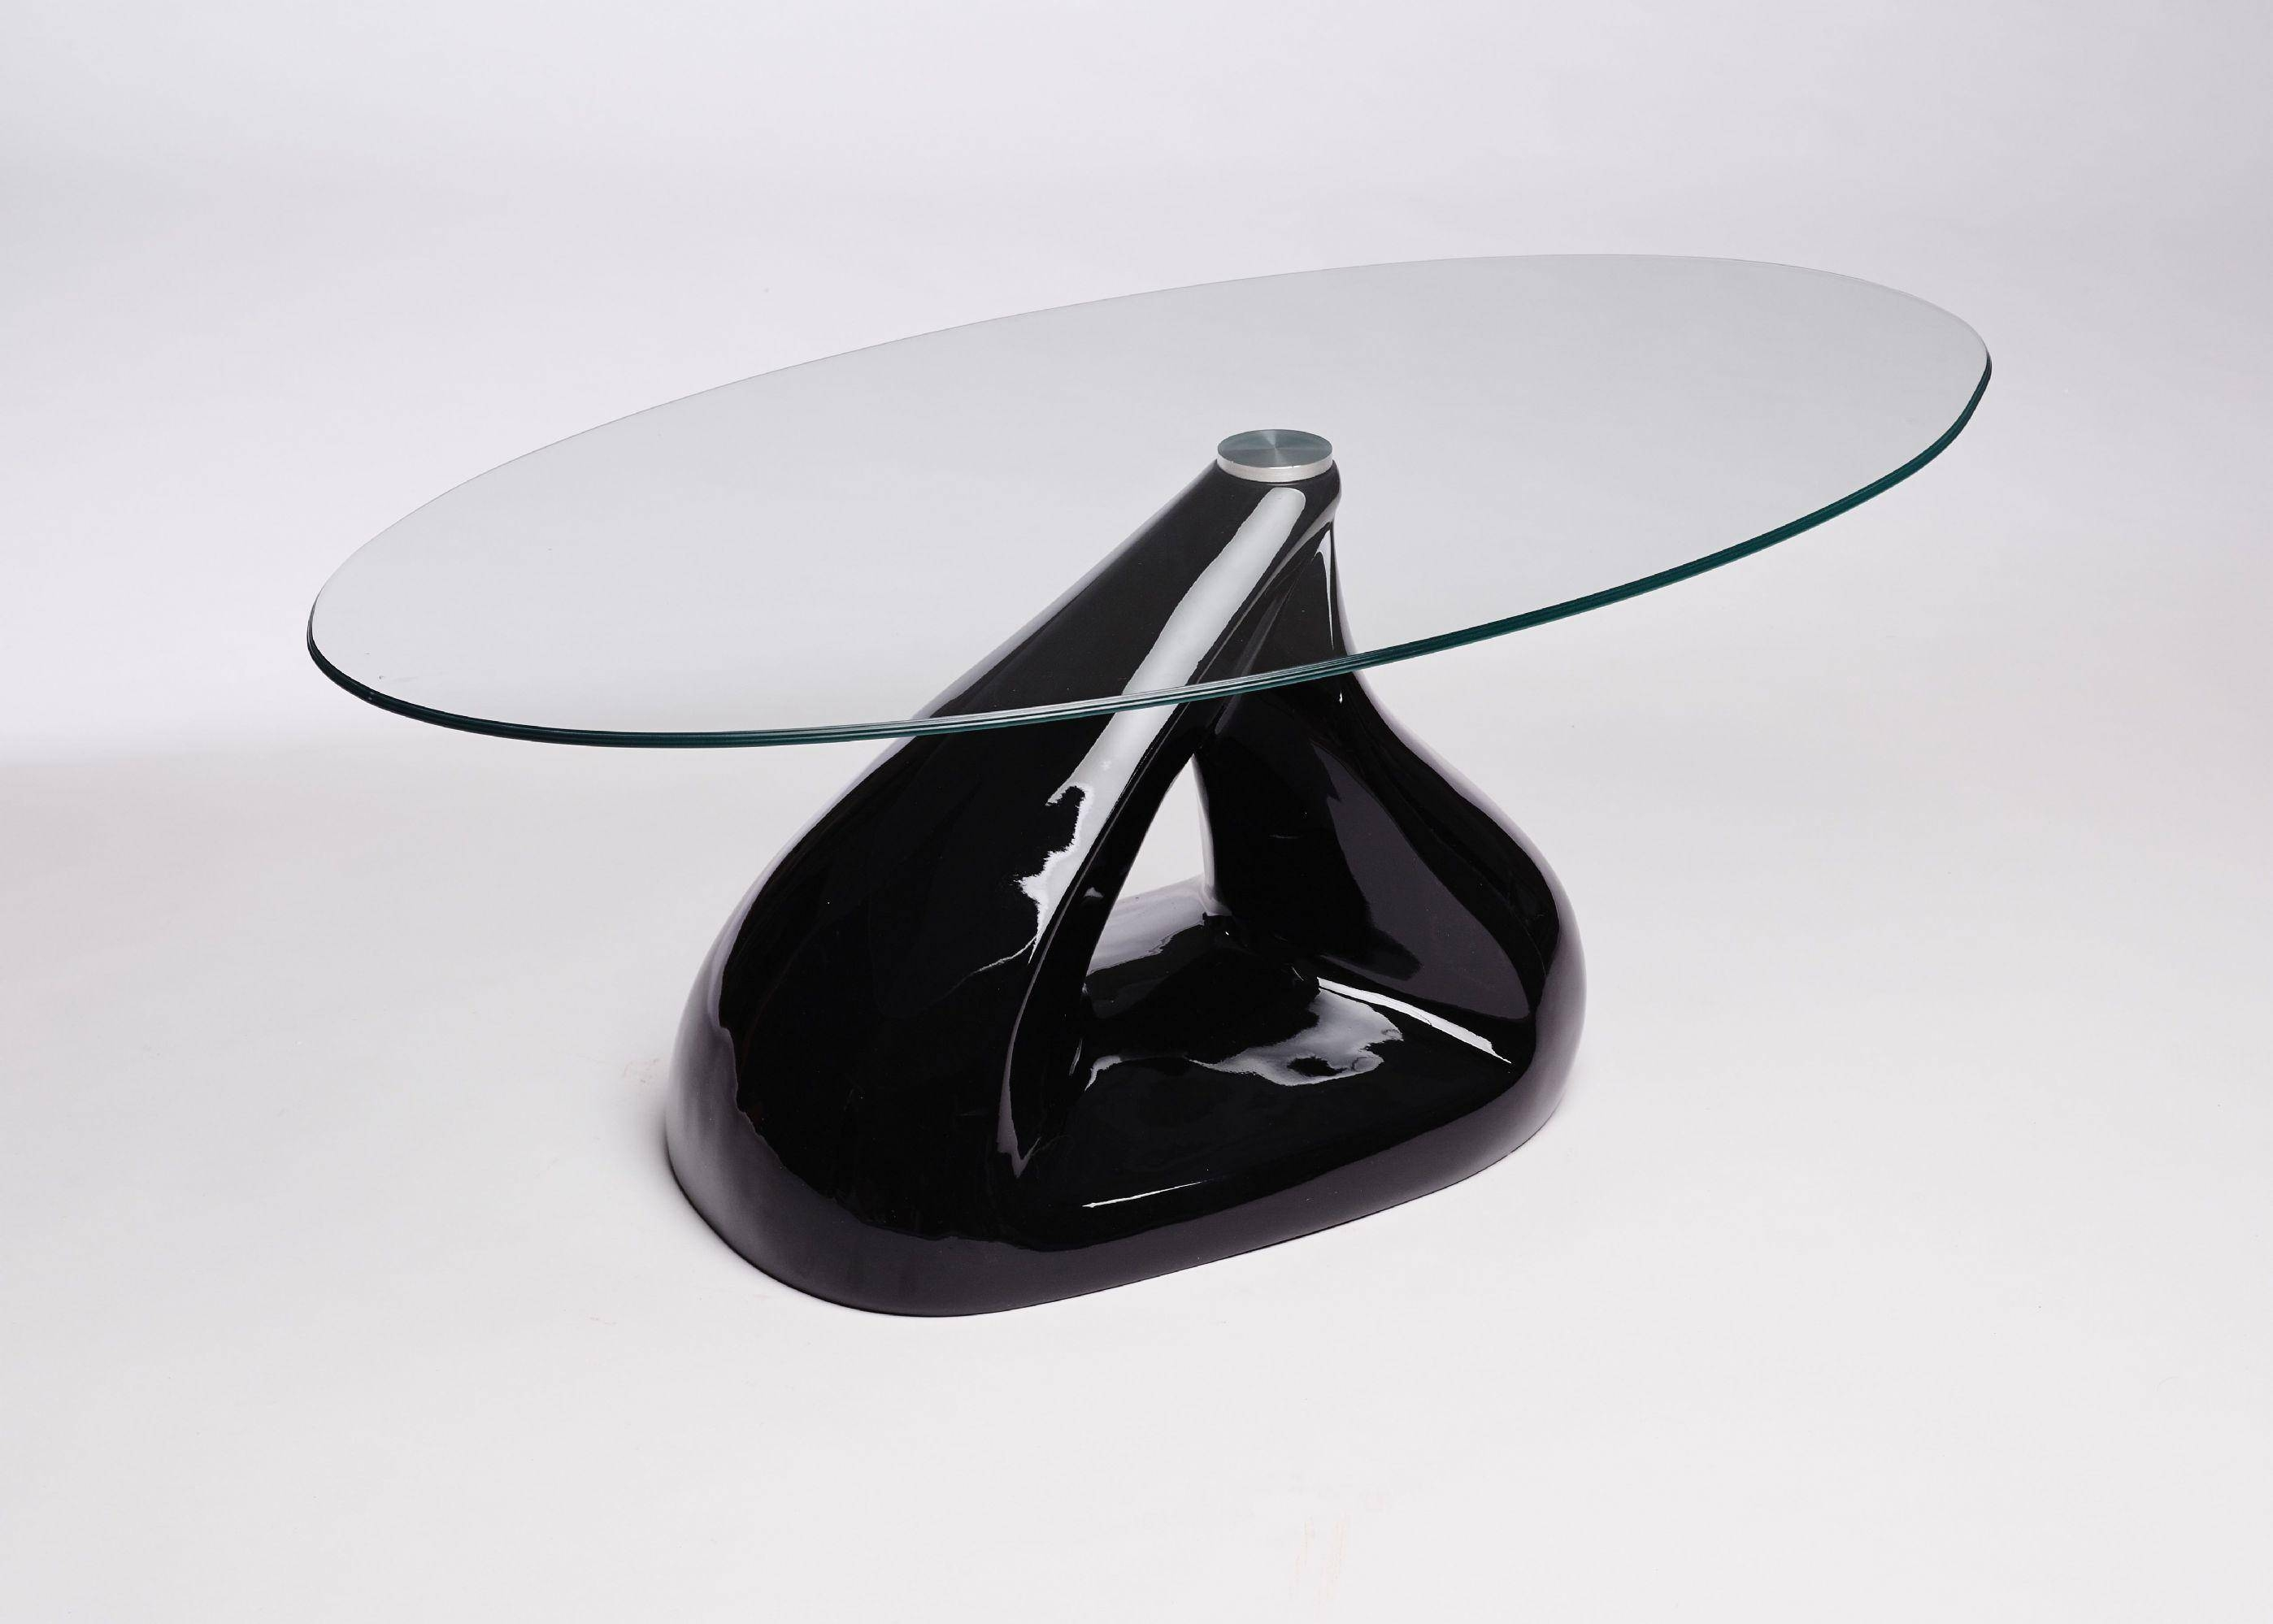 Modern Oval Glass Coffee Table Contemporary Retro Design - Look throughout Oval Black Glass Coffee Tables (Image 22 of 30)